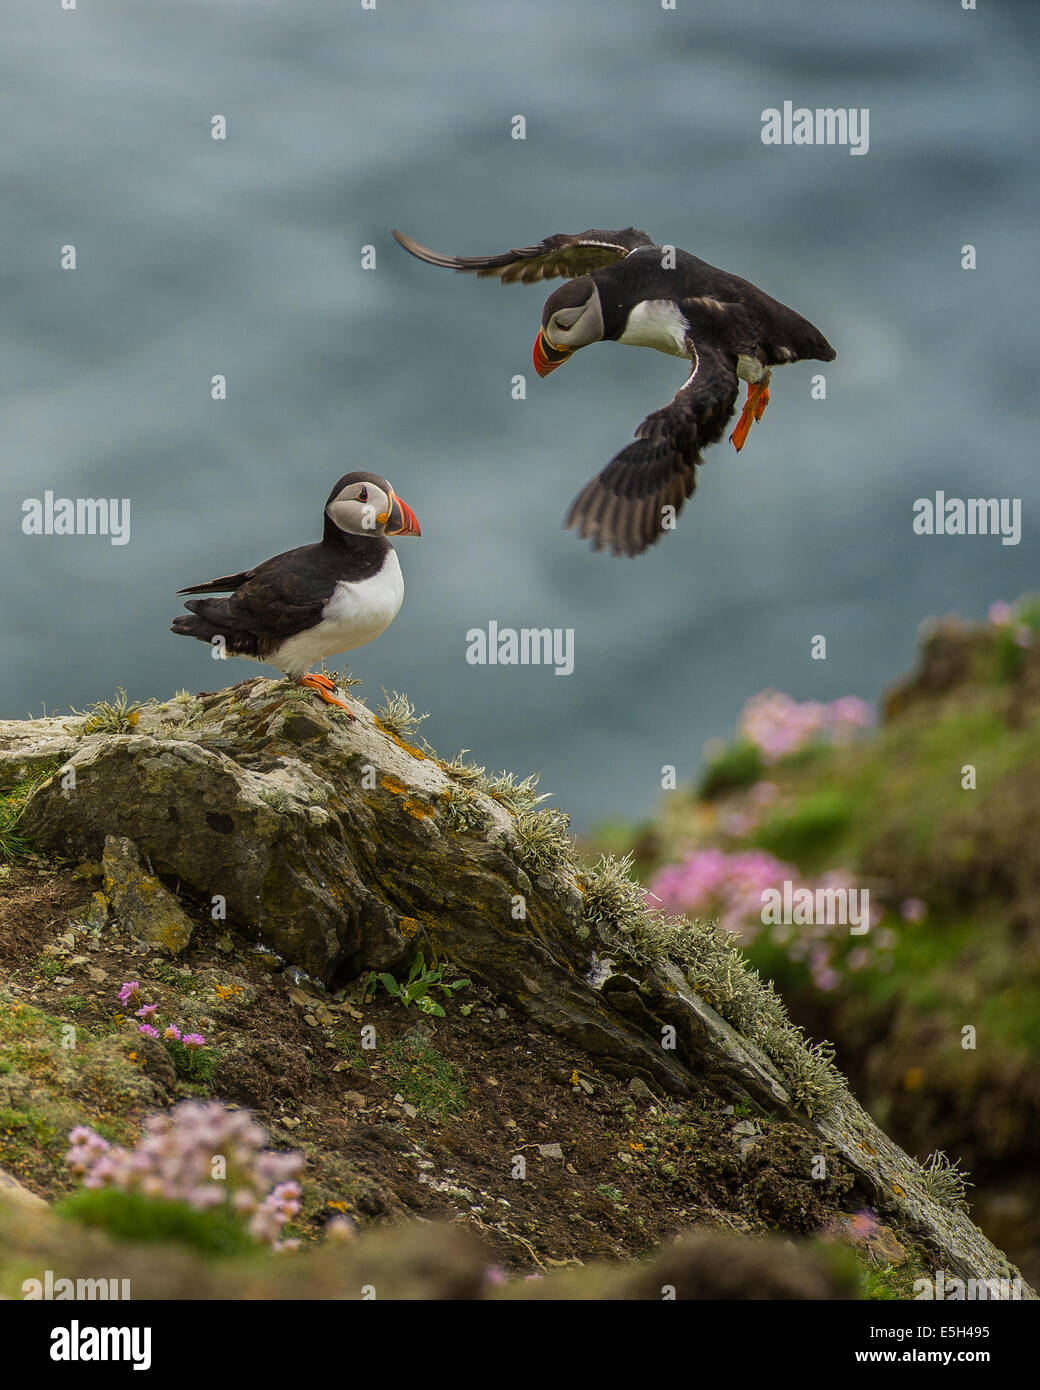 Puffins on cliff edge Stock Photo